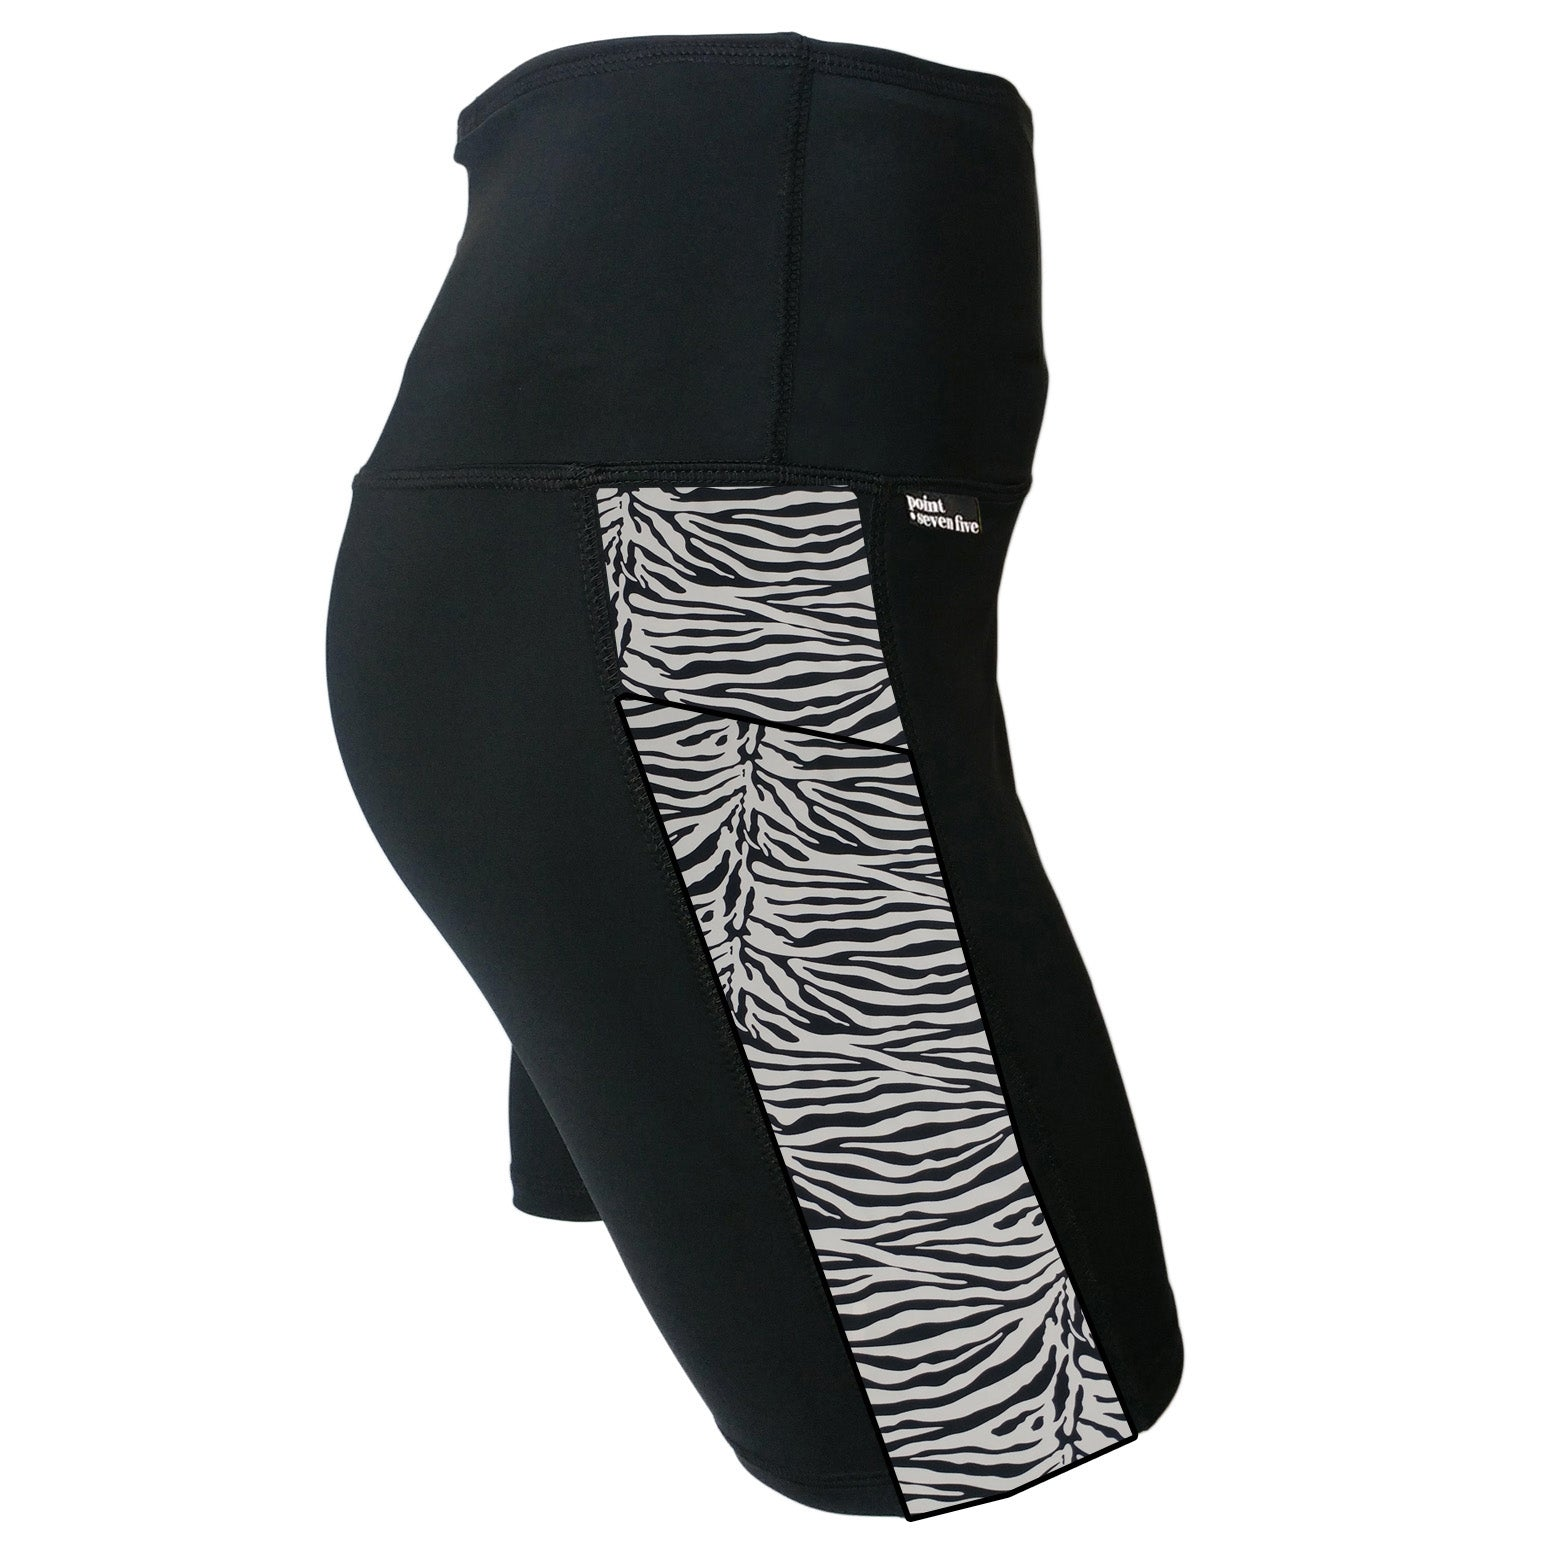 Zebra Pocket